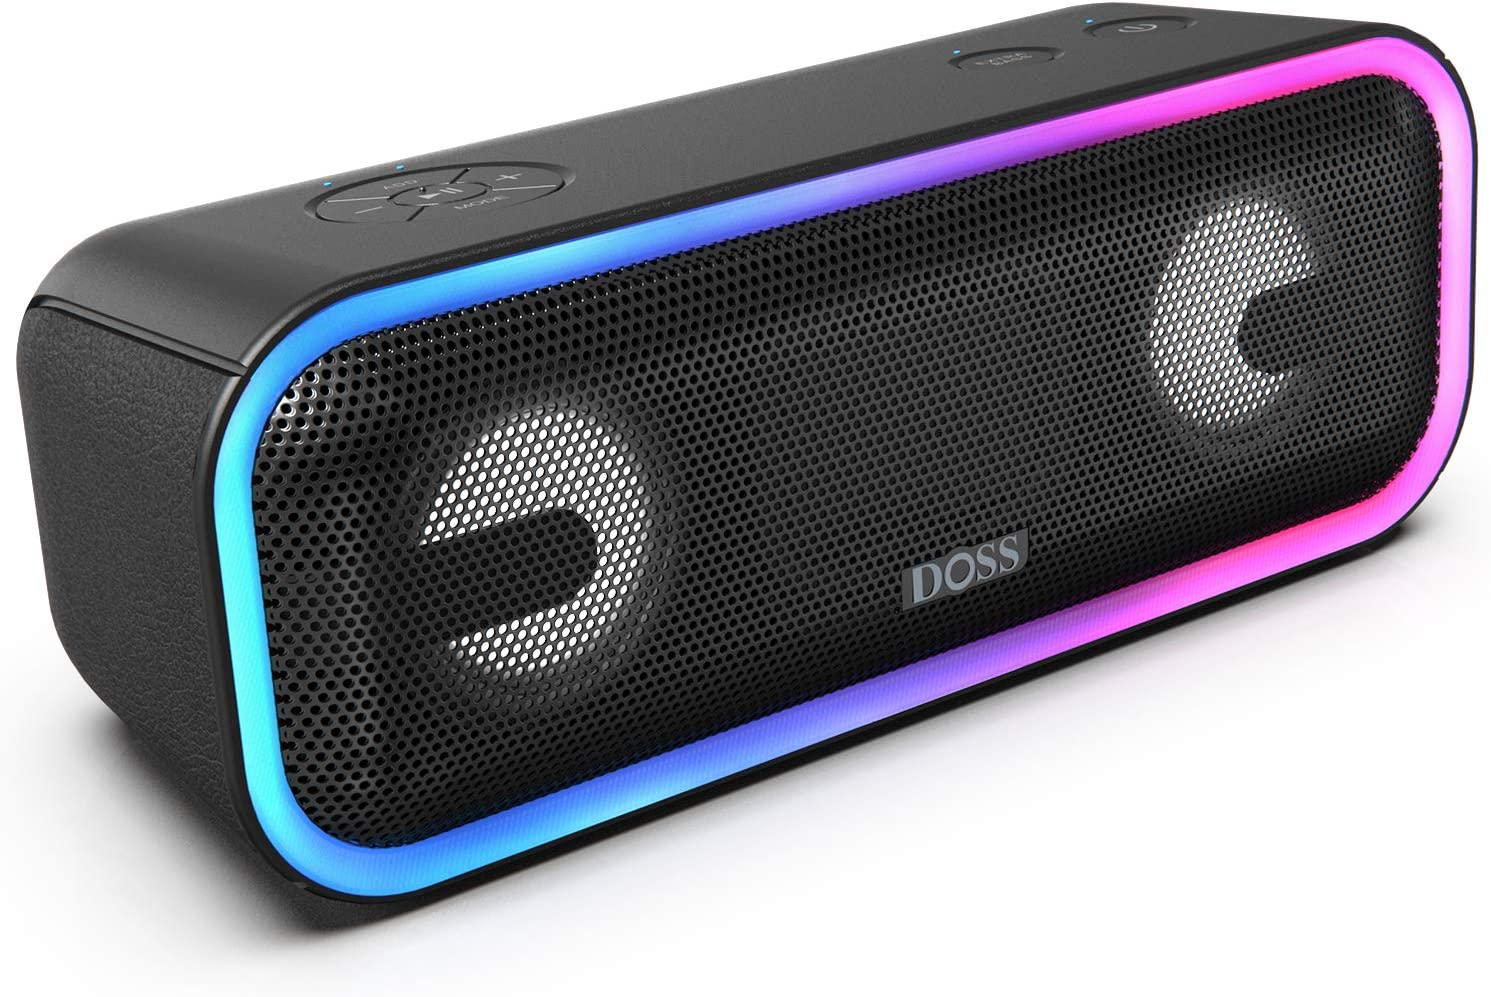 doss-soundbox-pro-speaker